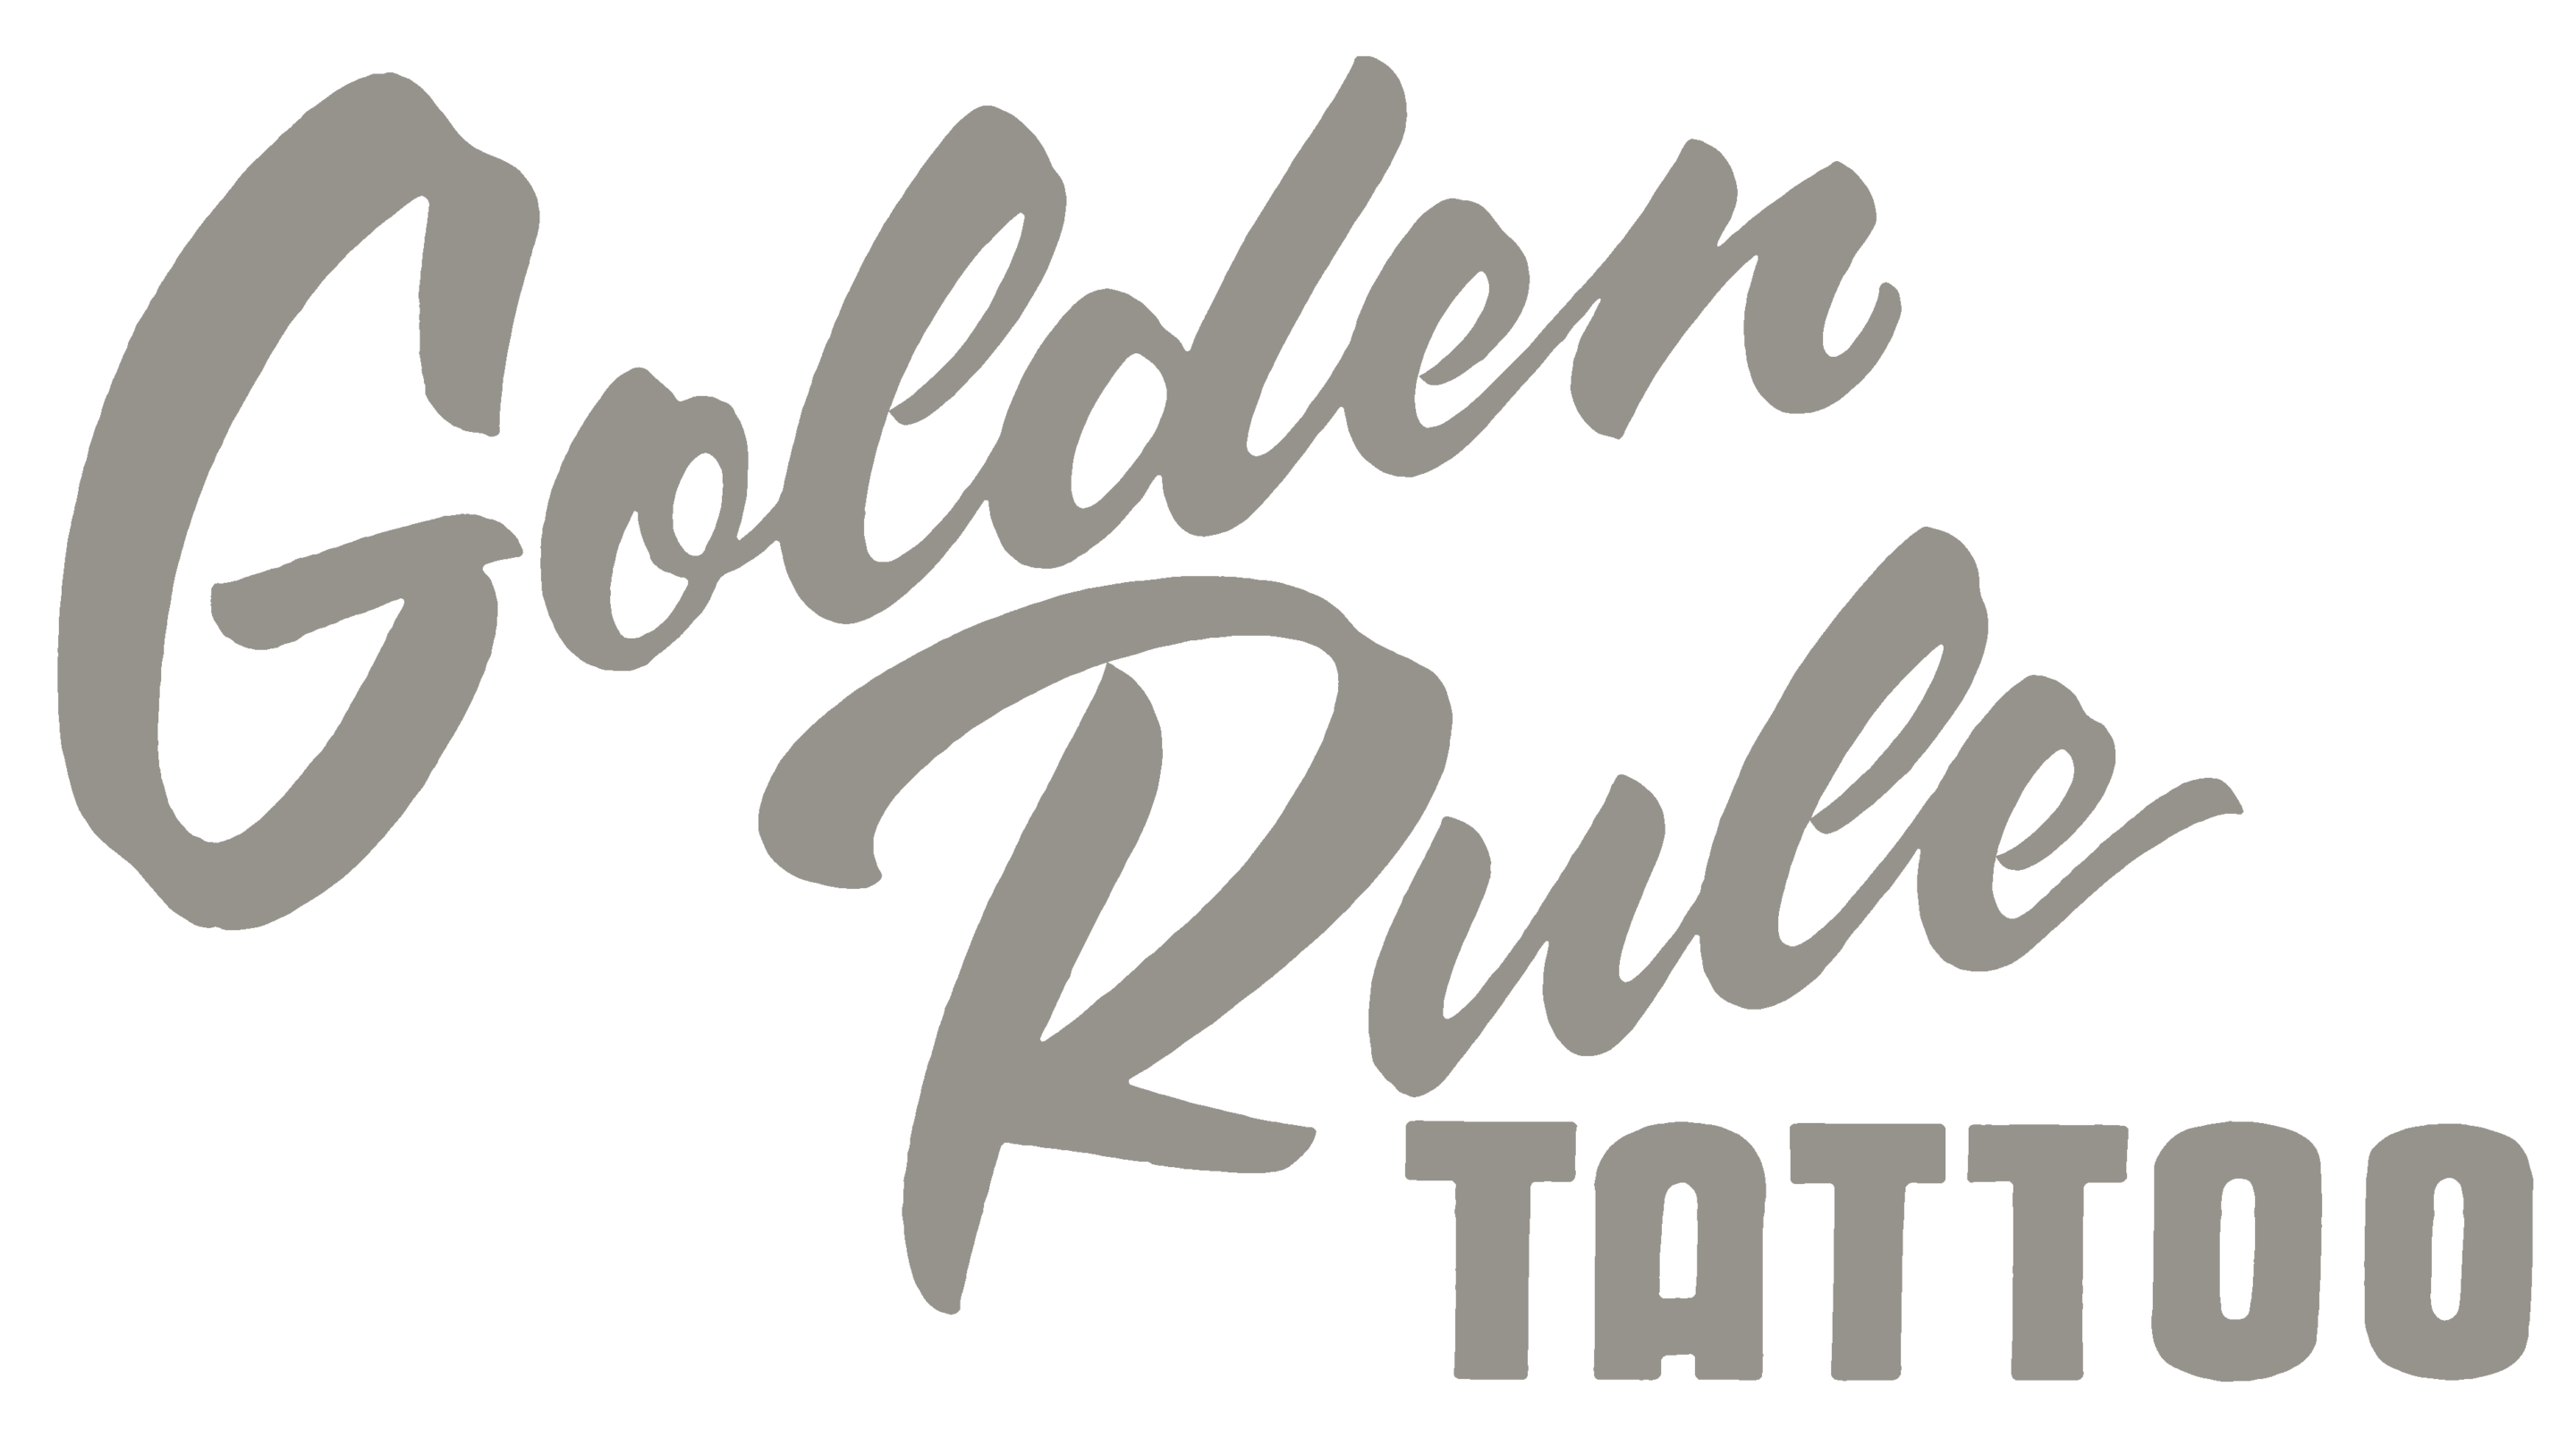 3ddffce0 Golden Rule Tattoo – Welcome to The Golden Rule Tattoo Phoenix. Golden Rule  Tattoo Phoenix was born out of a simple idea. Create a tattoo shop that is  clean ...